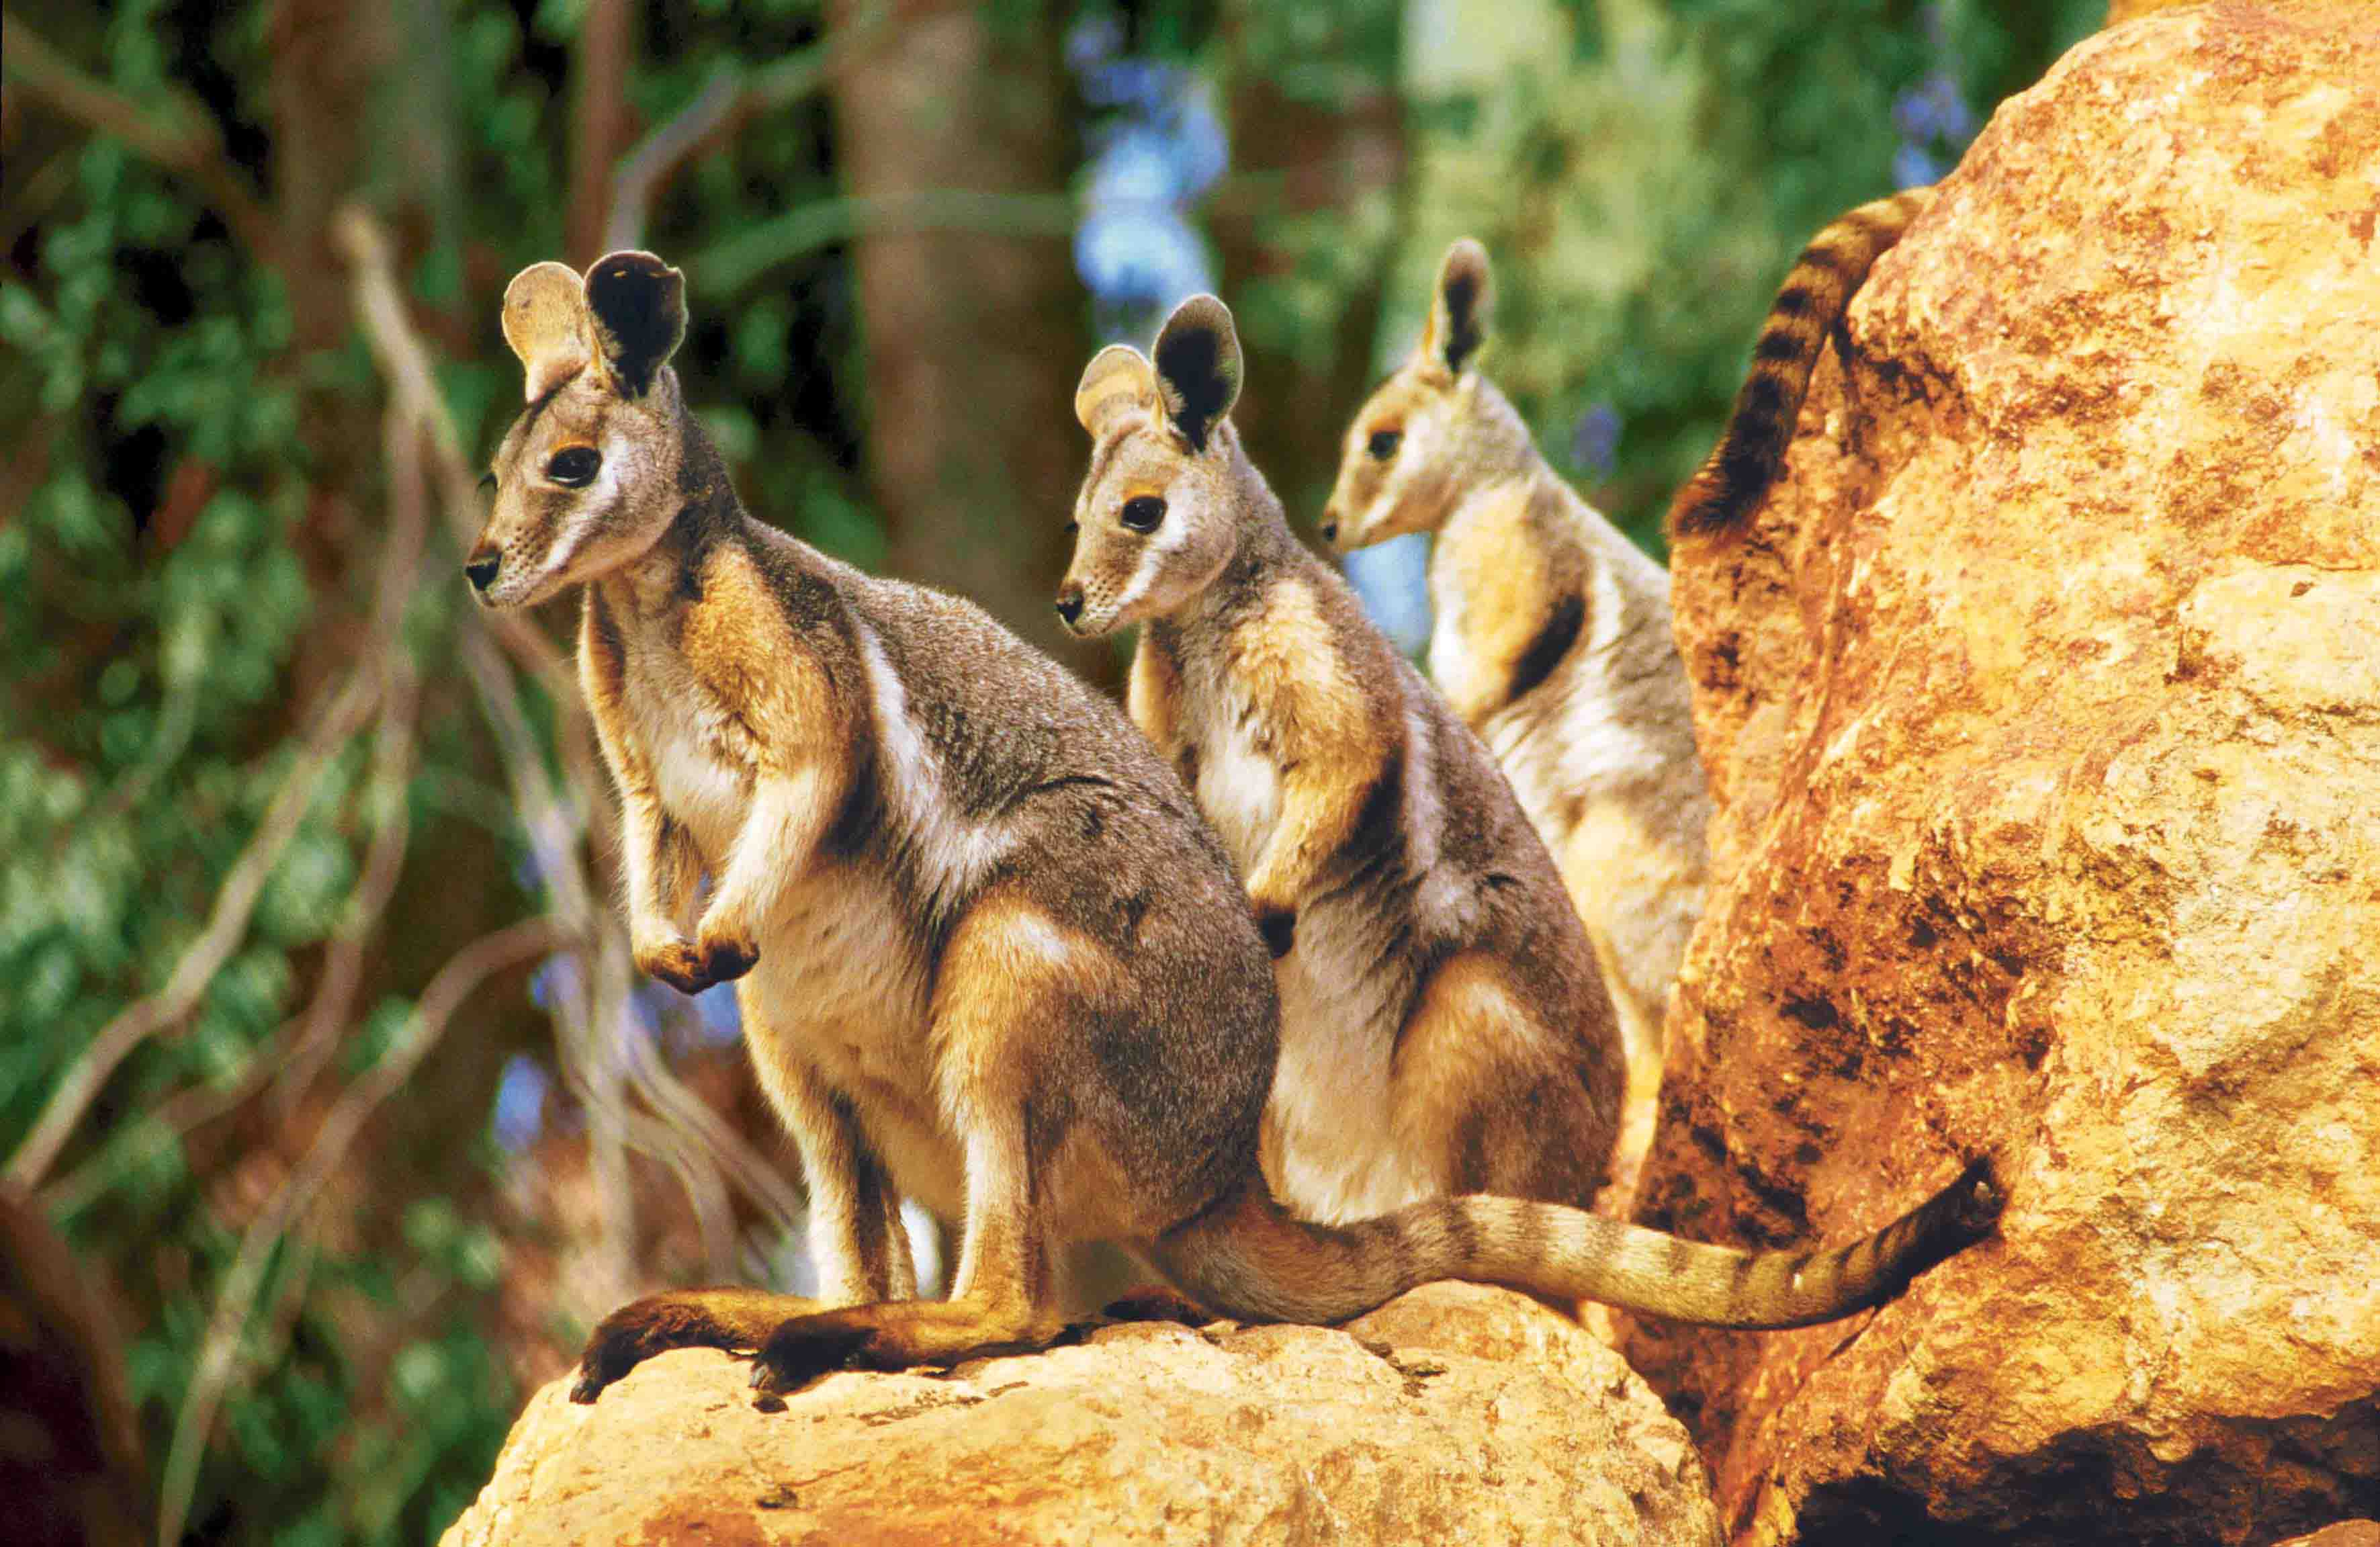 Lion Animal Wallpaper 4 Rock Wallaby Hd Wallpapers Background Images